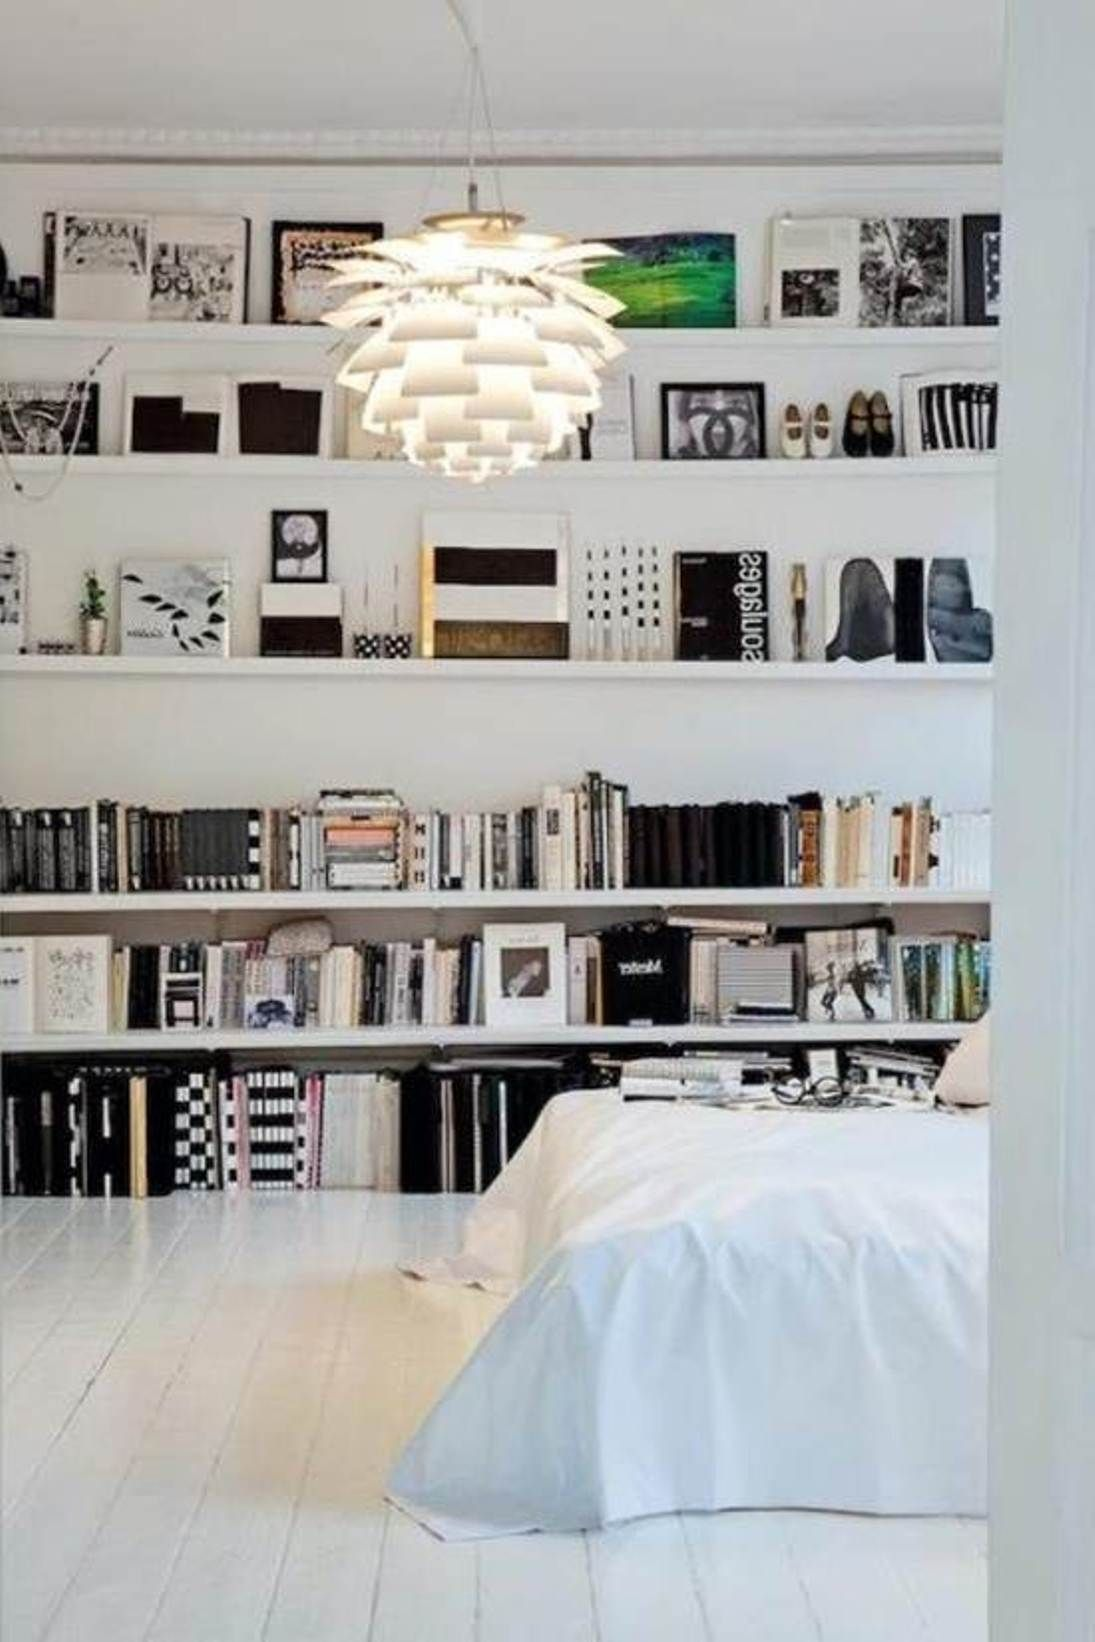 30 Clever Space Saving Design Ideas For Small Homes Design Bump Small Room Design Small Room Storage Bedroom Decor For Small Rooms